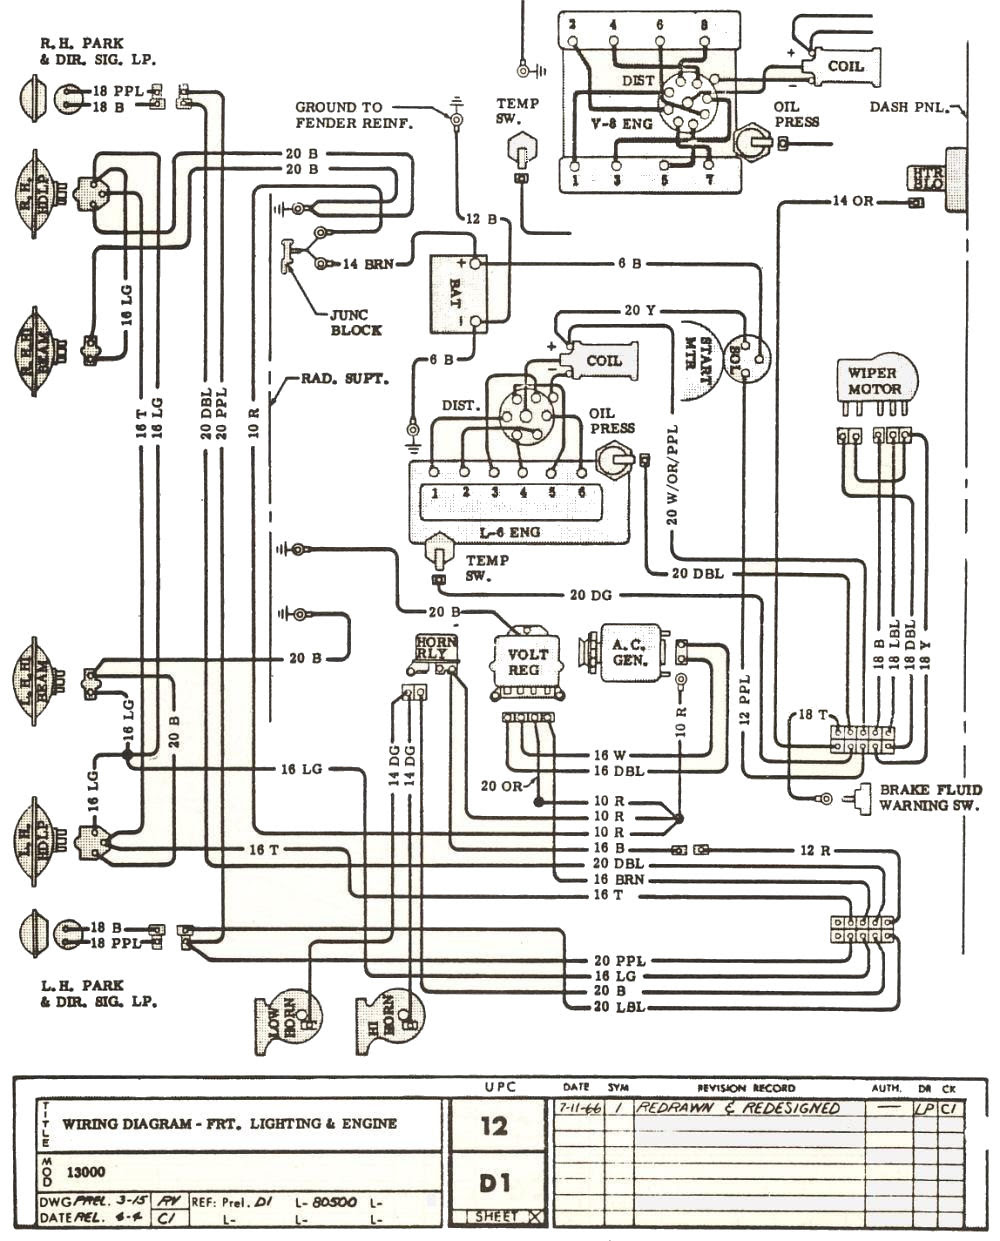 1970 pontiac gto wiring diagram - 07 ford focus fuse diagram for wiring  diagram schematics  wiring diagram schematics